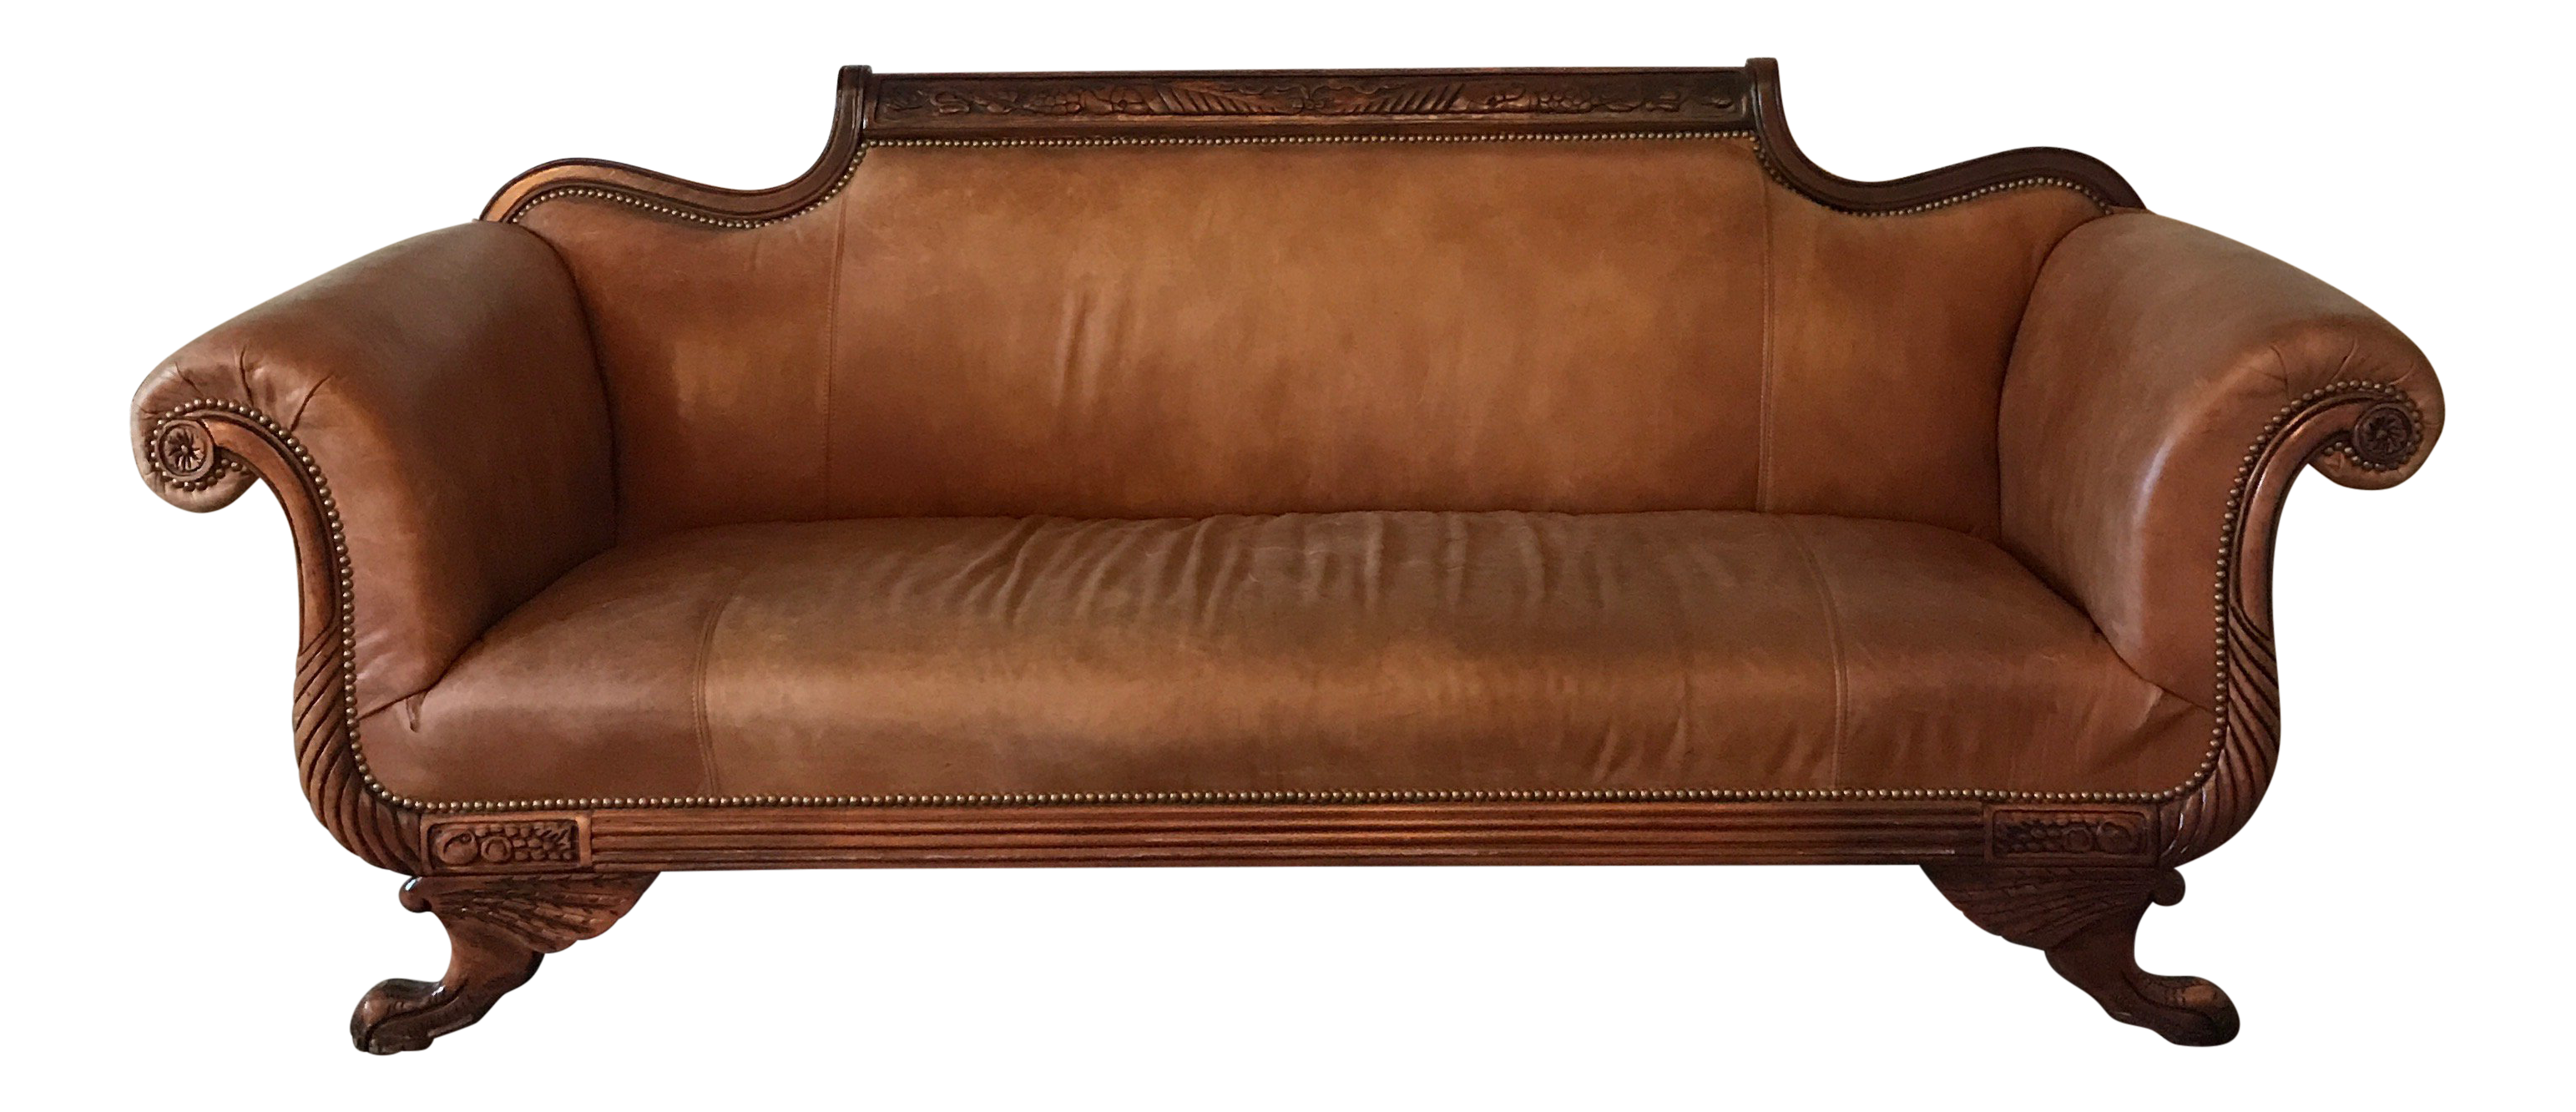 Duncan Phyfe Style Vintage Leather Sofa Chairish